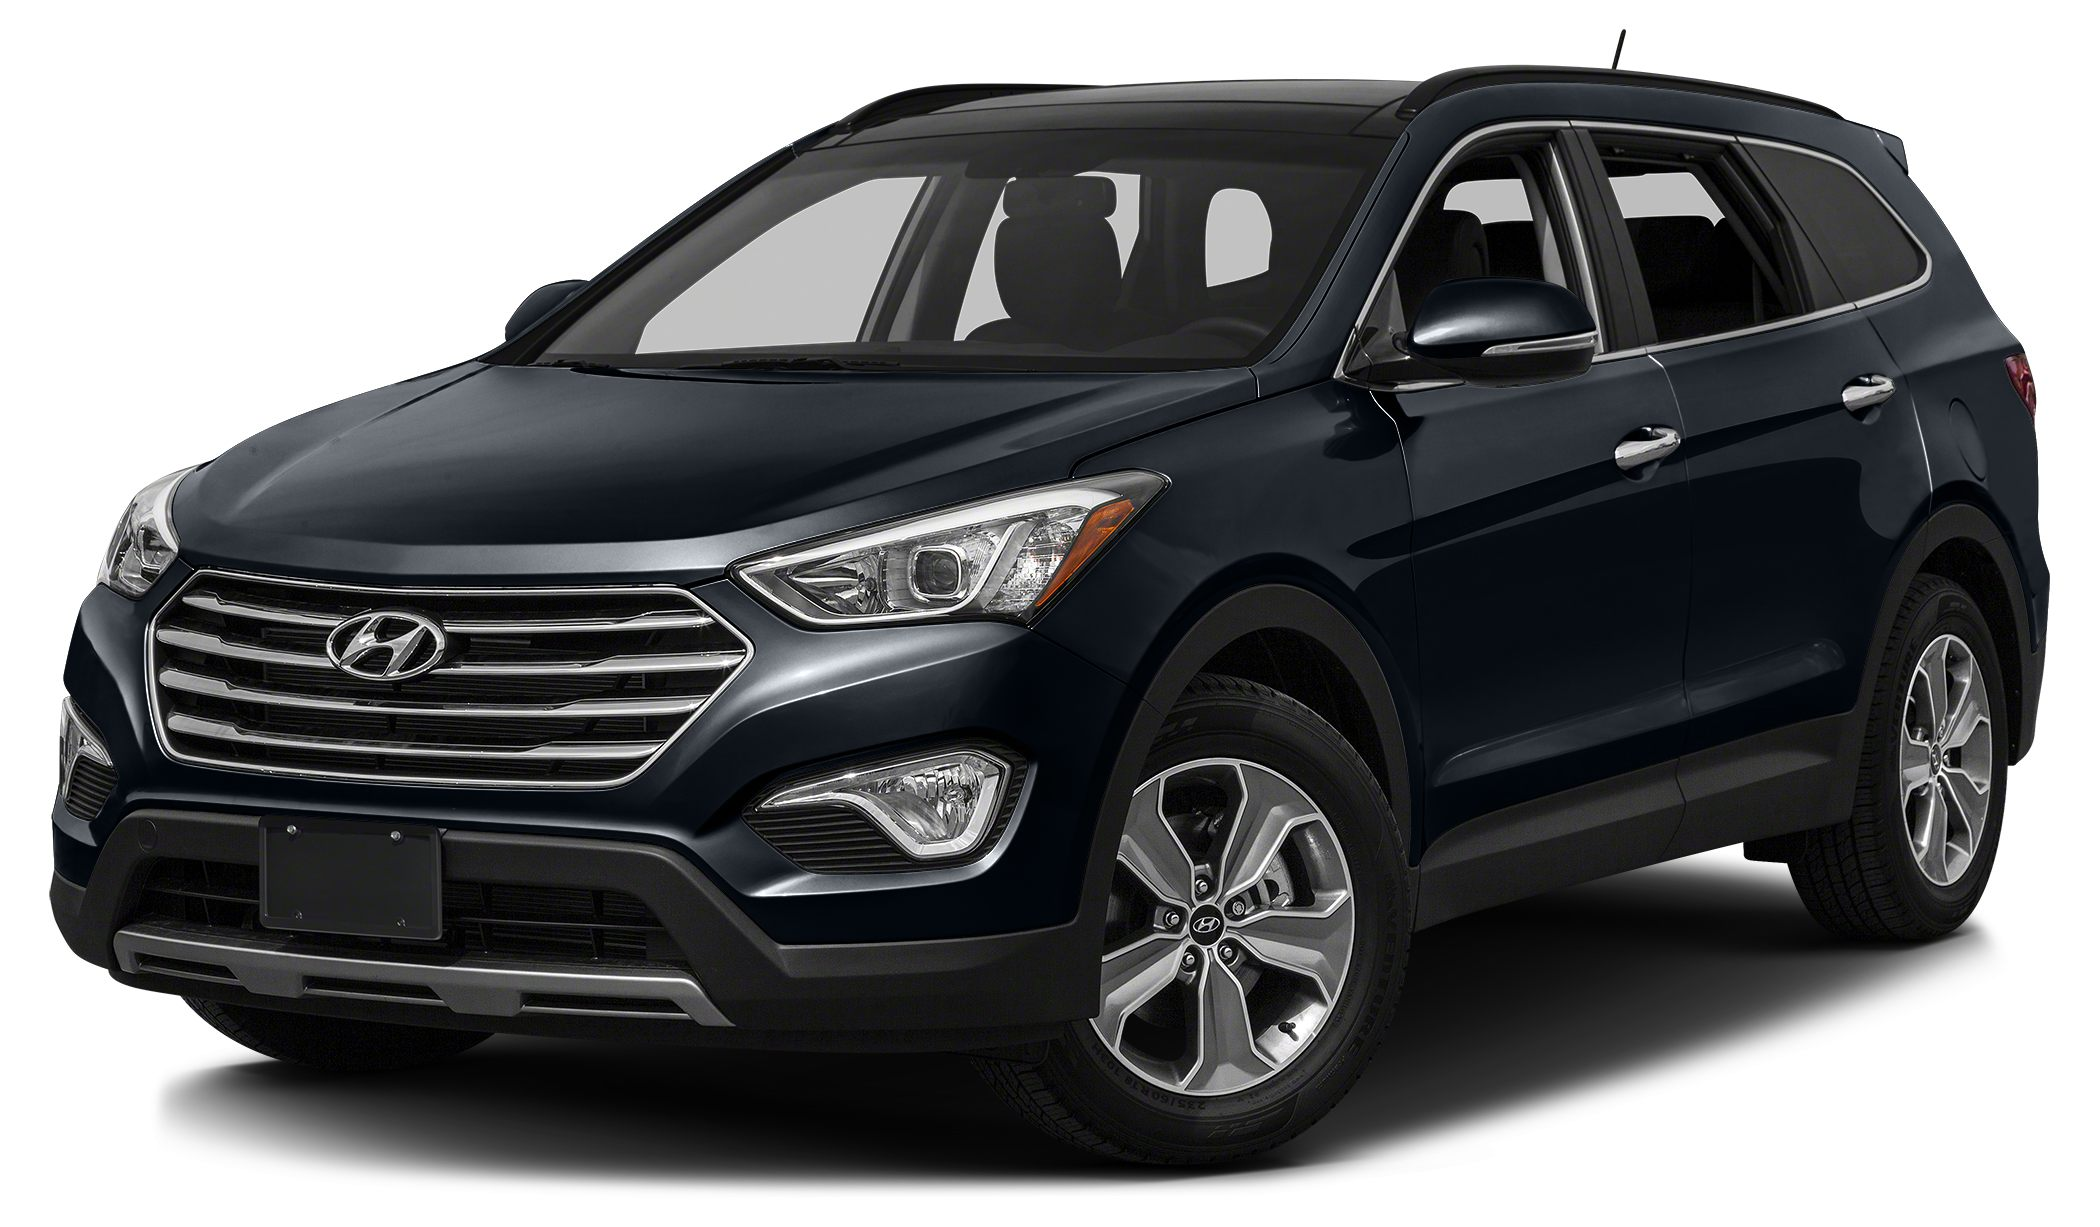 2015 Hyundai Santa Fe GLS REDUCED FROM 25300 FUEL EFFICIENT 24 MPG Hwy18 MPG City PRICED TO